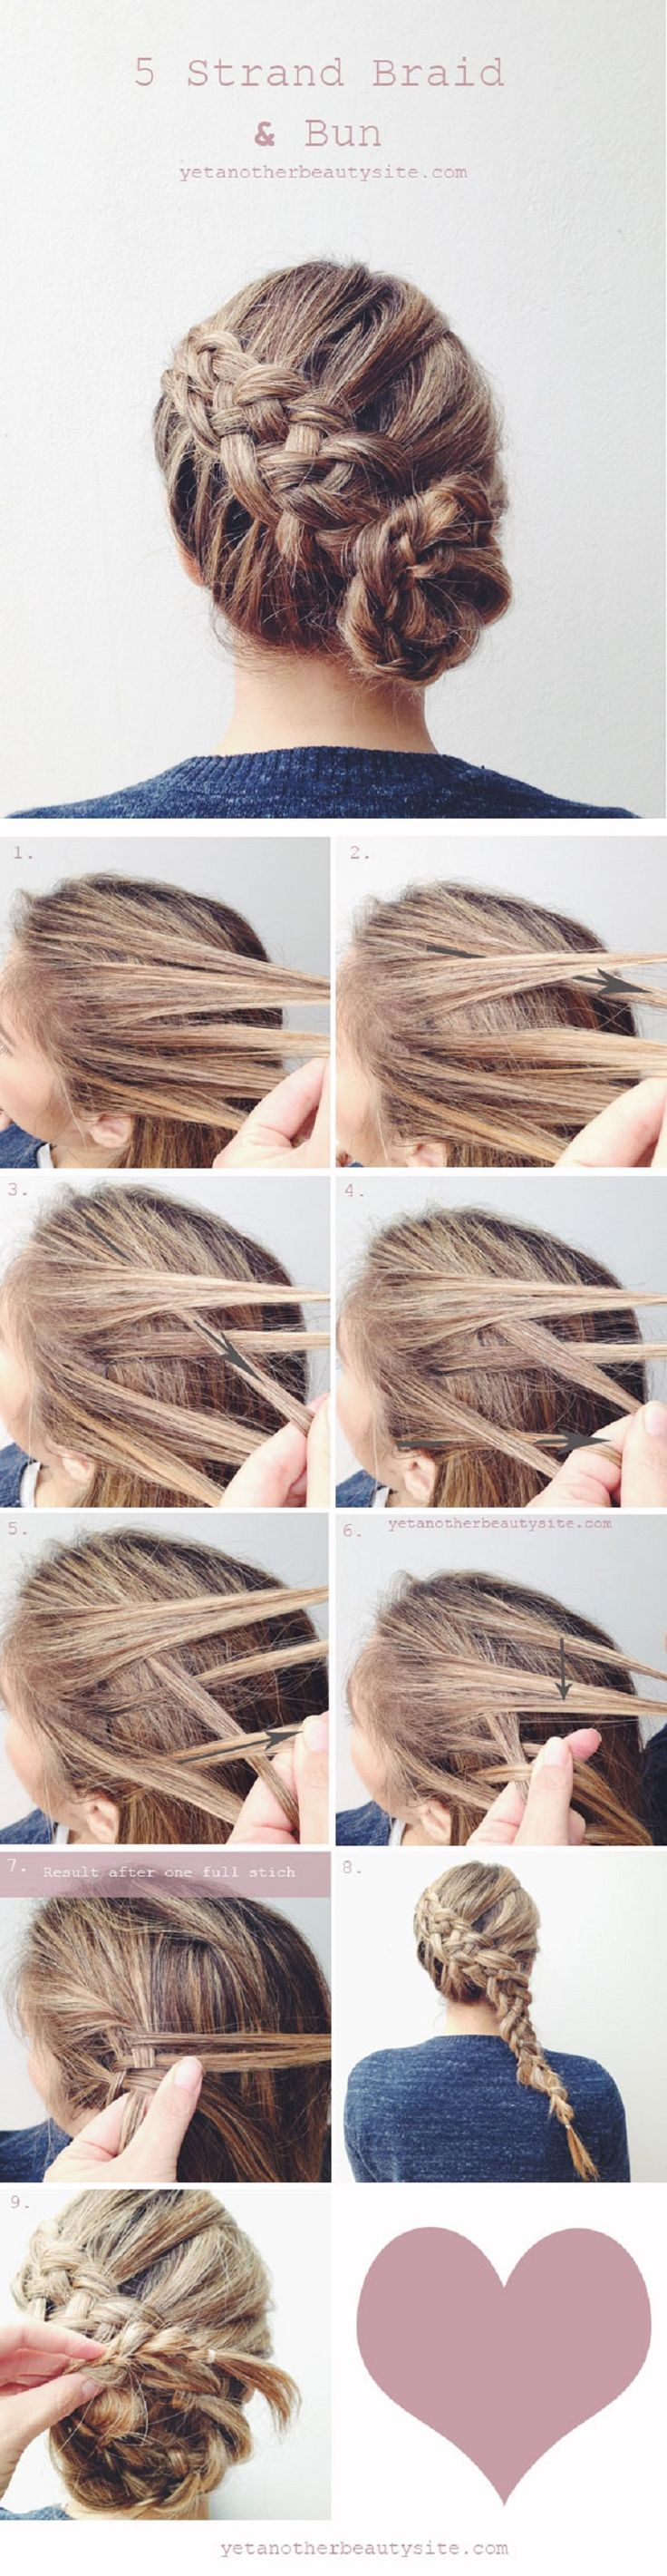 15 Braided Bun Hair Tutorials for DIY Projects